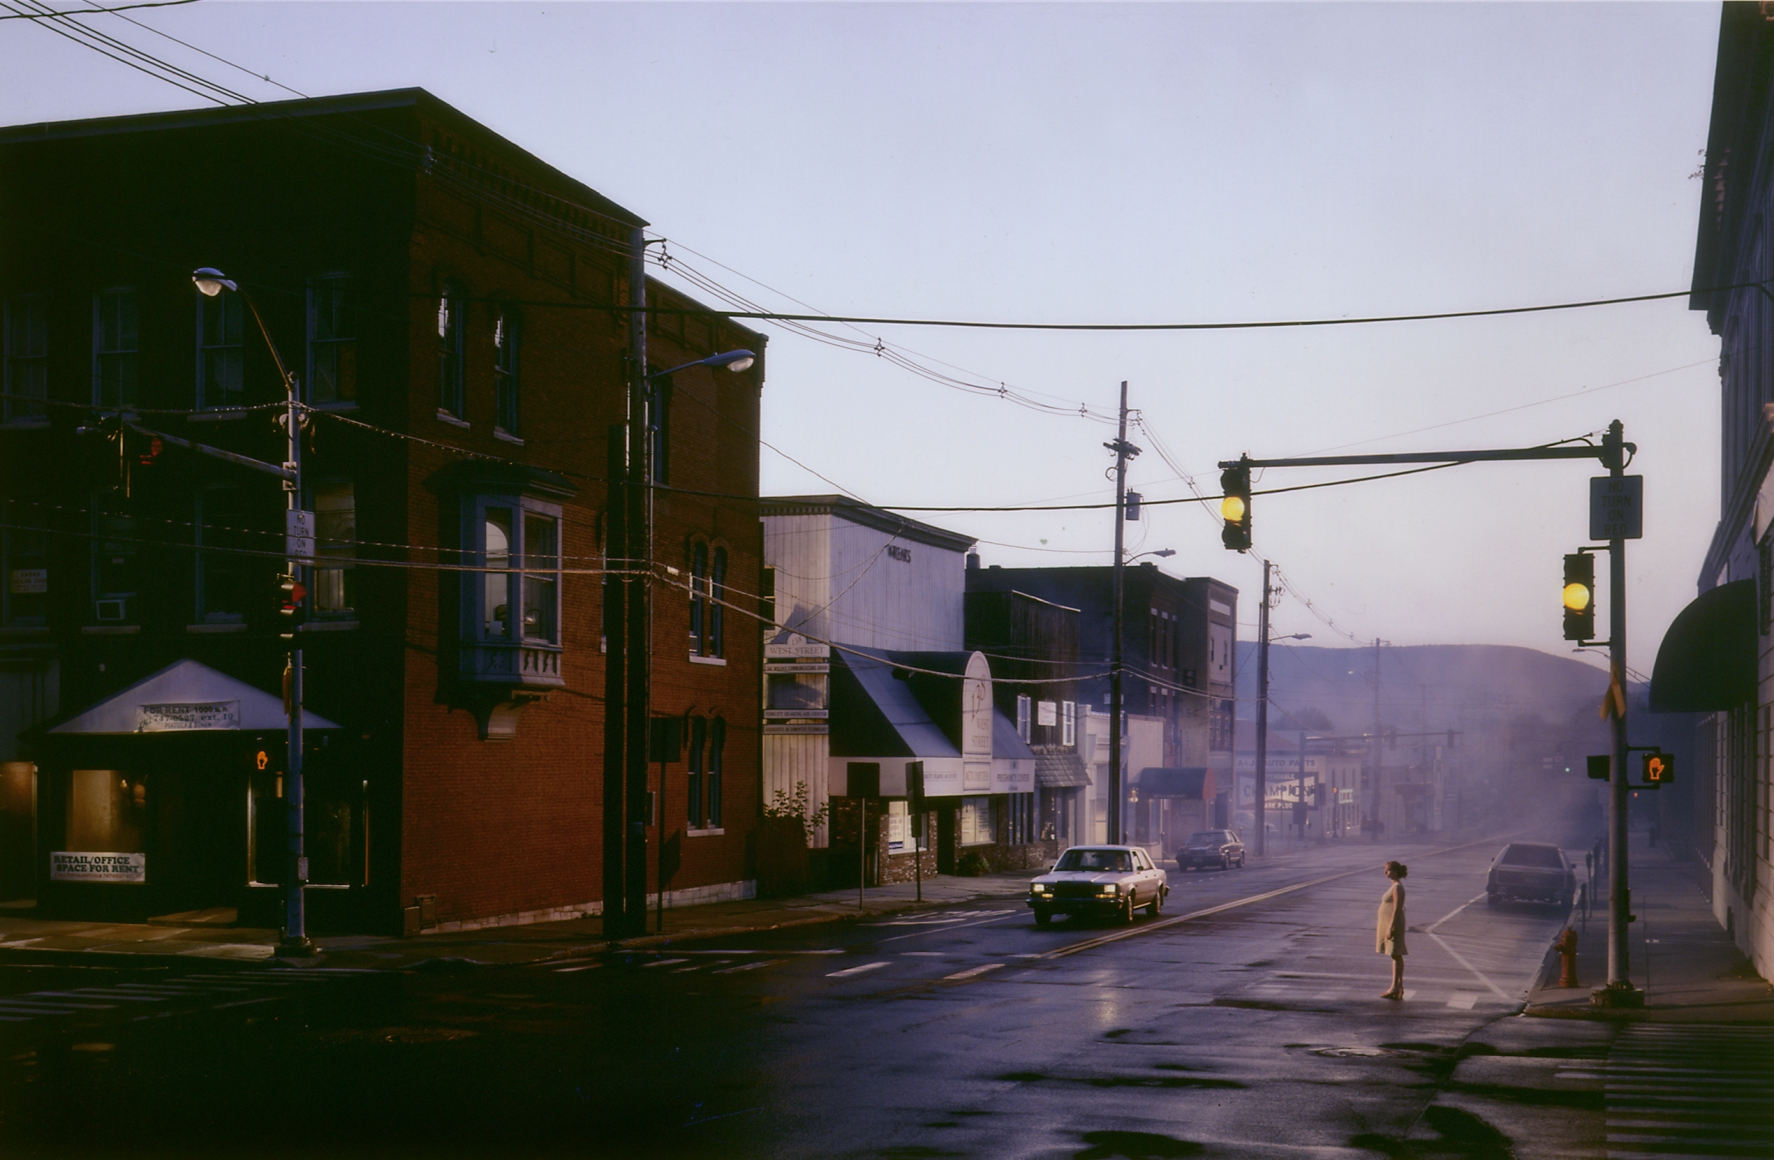 Gregory Crewdson, Untitiled (Merchant's Row), 2003